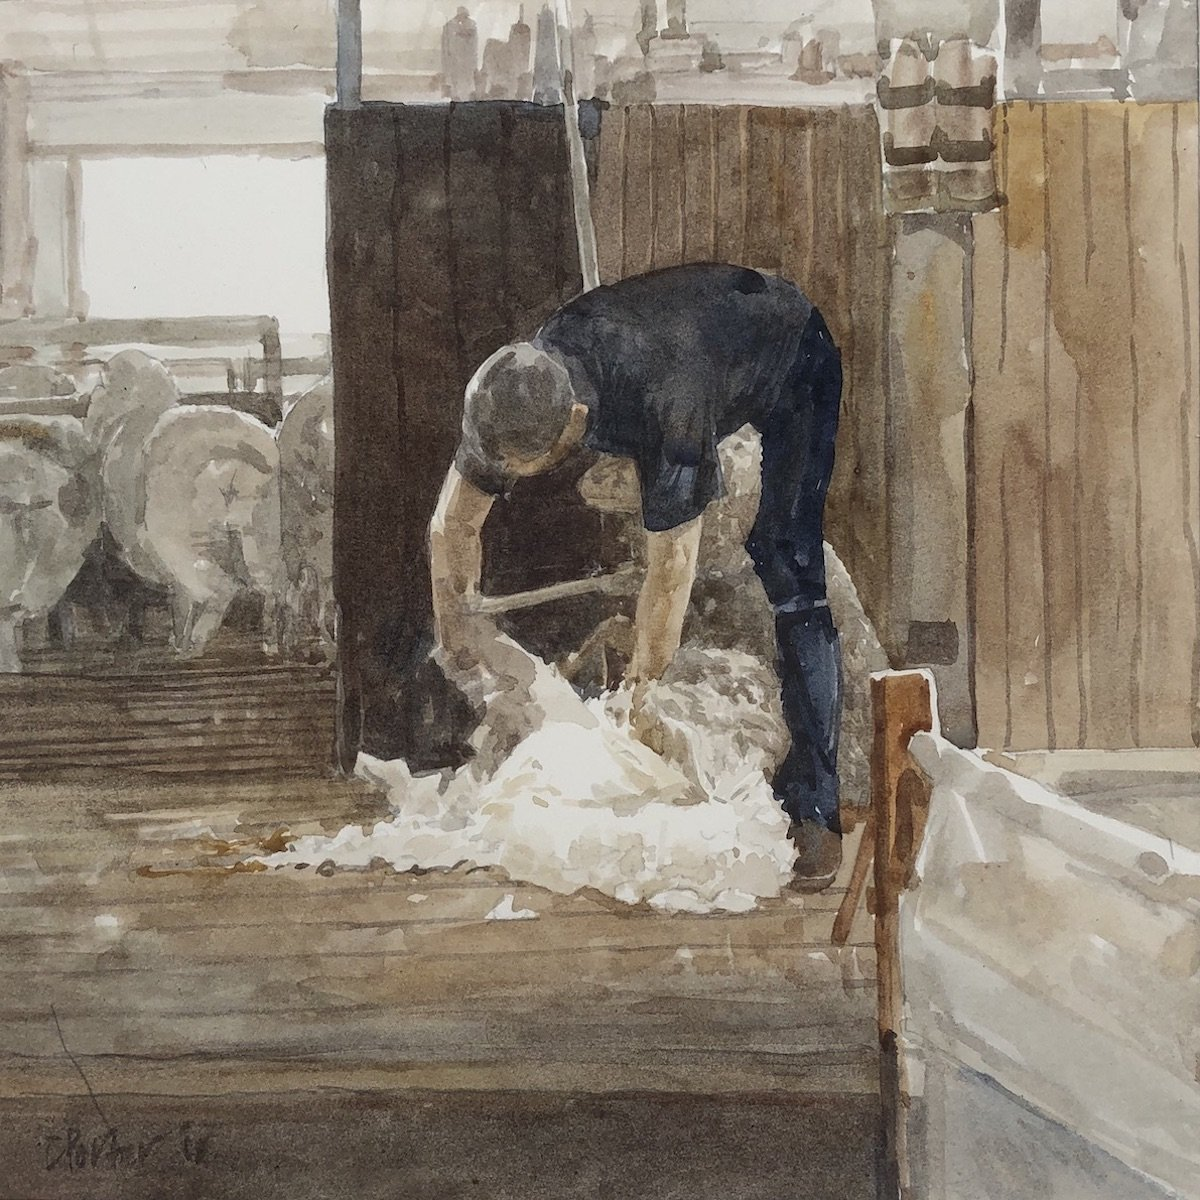 Watercolour painting by Christine Porter showing a shearer in a black shirt and pants bending over a sheep shearing. Behind him more woolly sheep are milling.